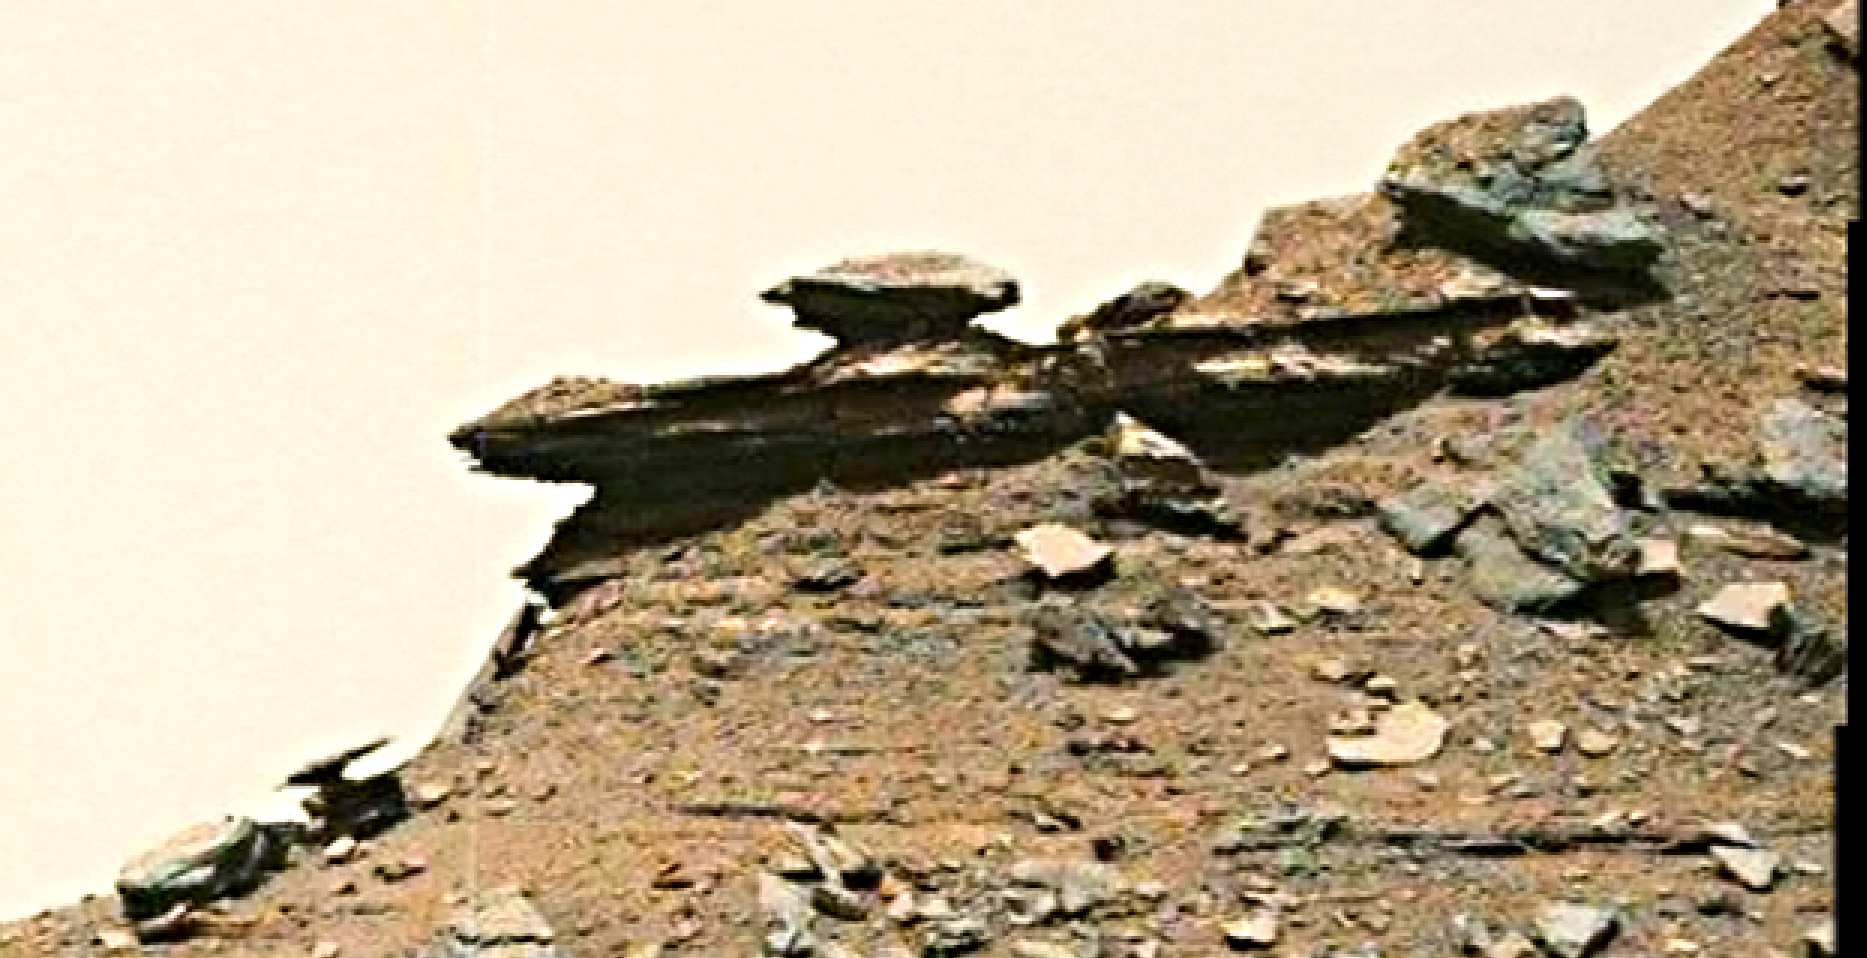 mars sol 1432 b&w anomaly artifacts 13 was life on mars